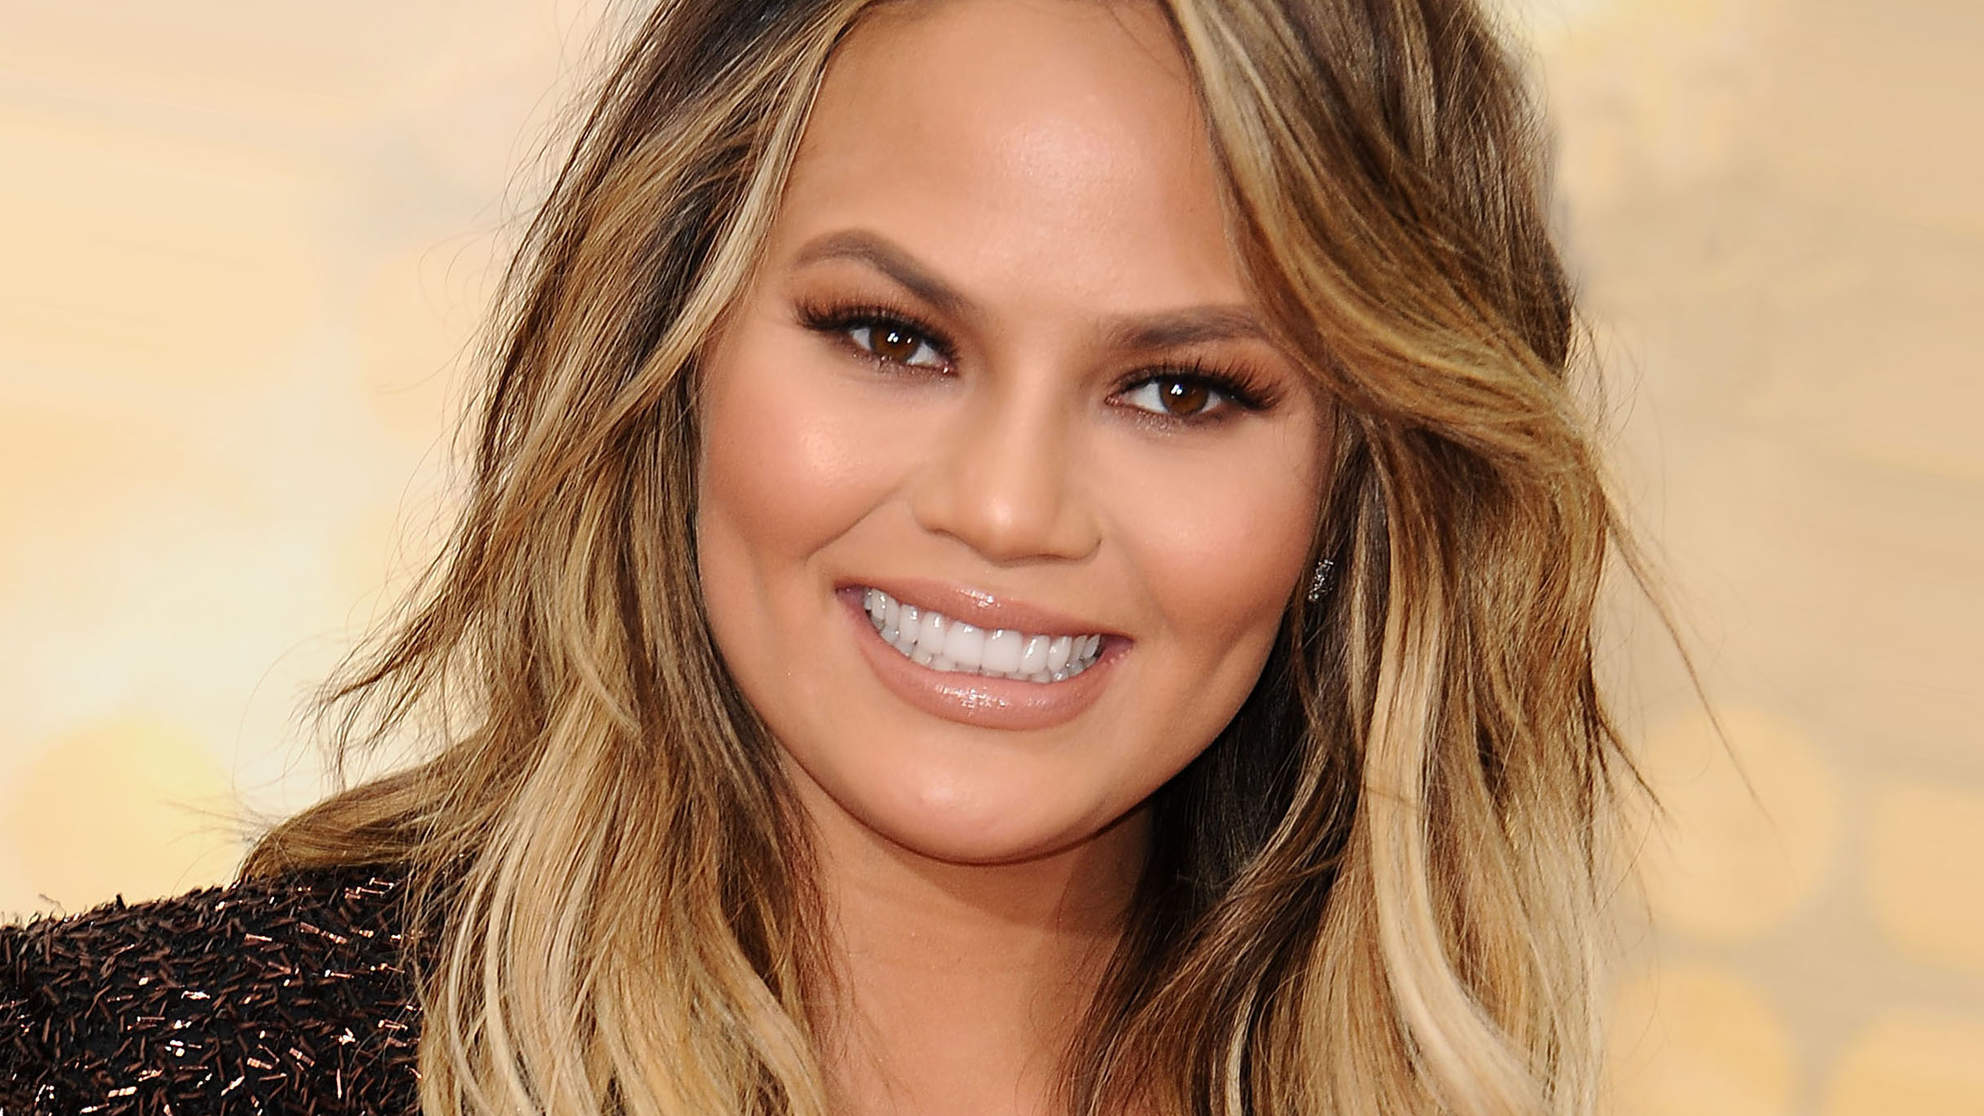 Chrissy Teigen Dresses Up Her Baby Bump in Curve-Hugging Gown: 'Aloha, Bebe'